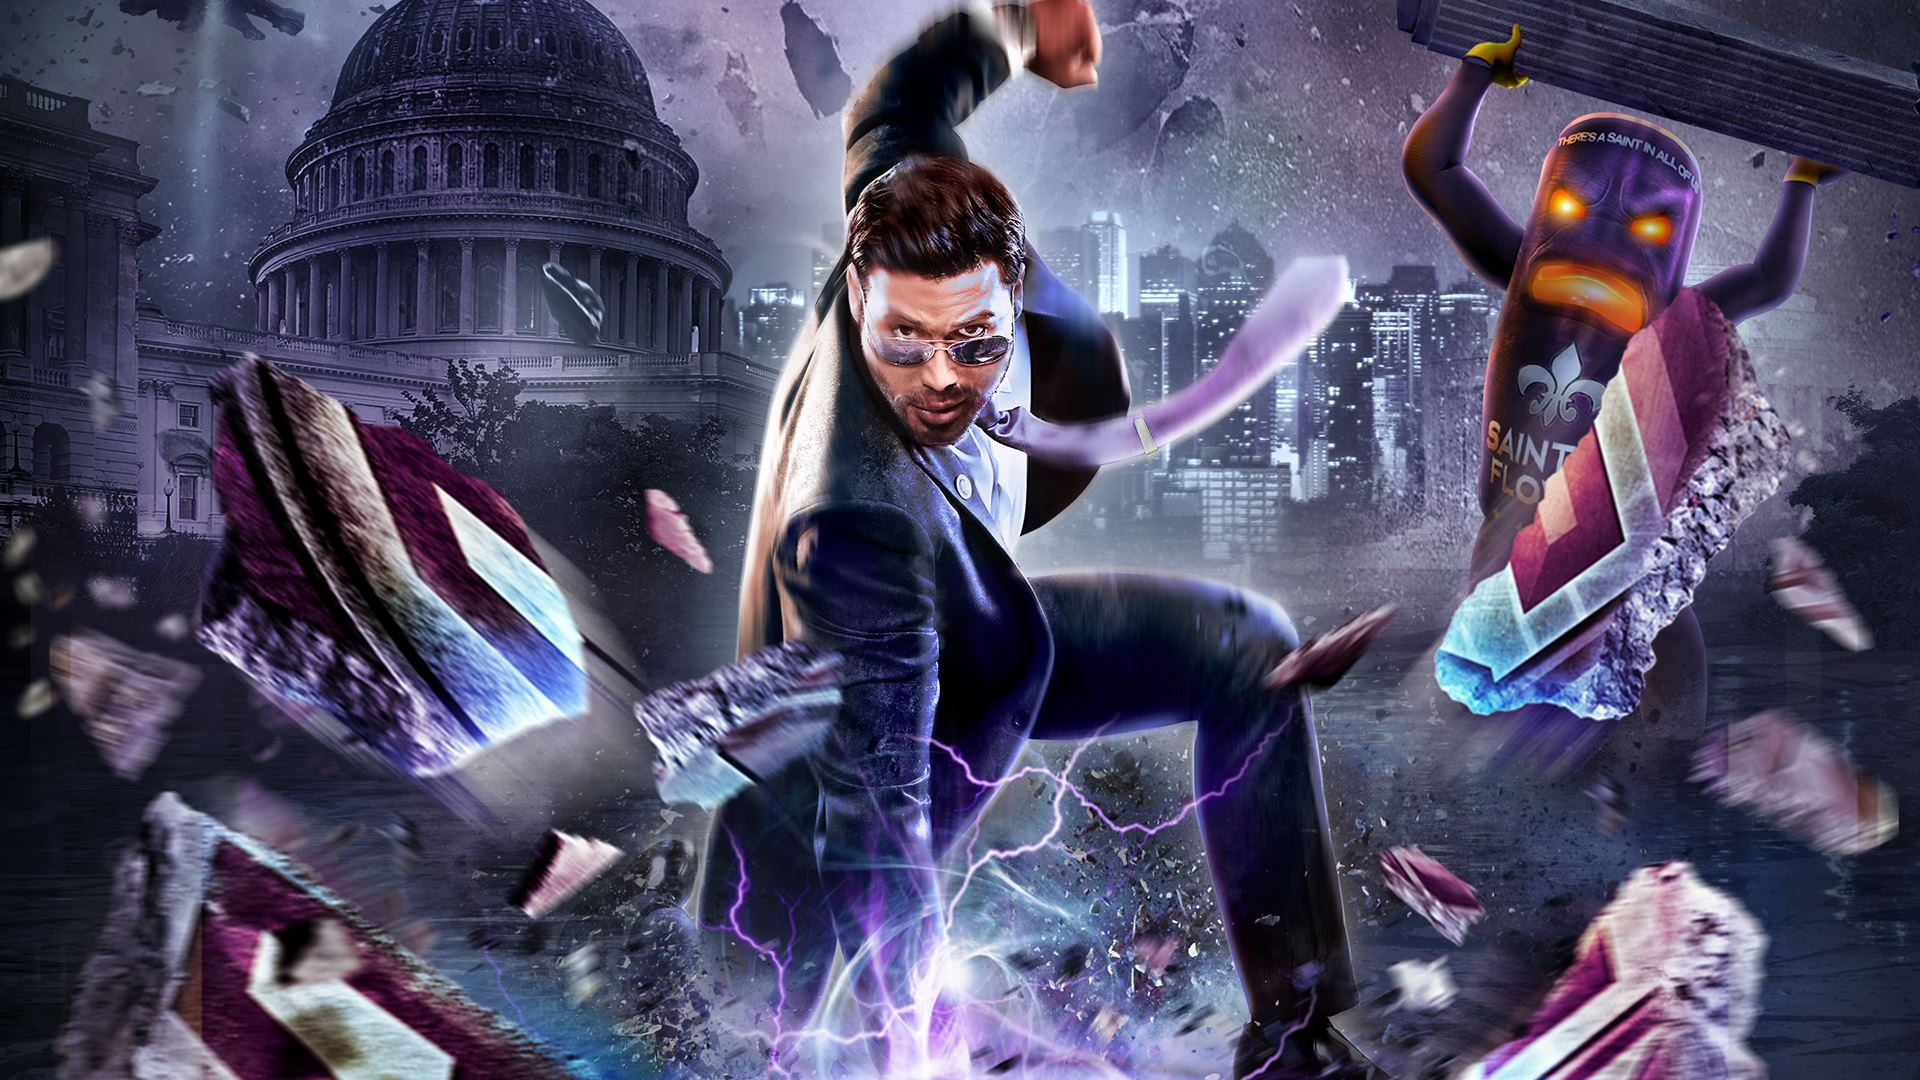 8 saints row iv re elected hd wallpapers background images 8 saints row iv re elected hd wallpapers background images wallpaper abyss voltagebd Images